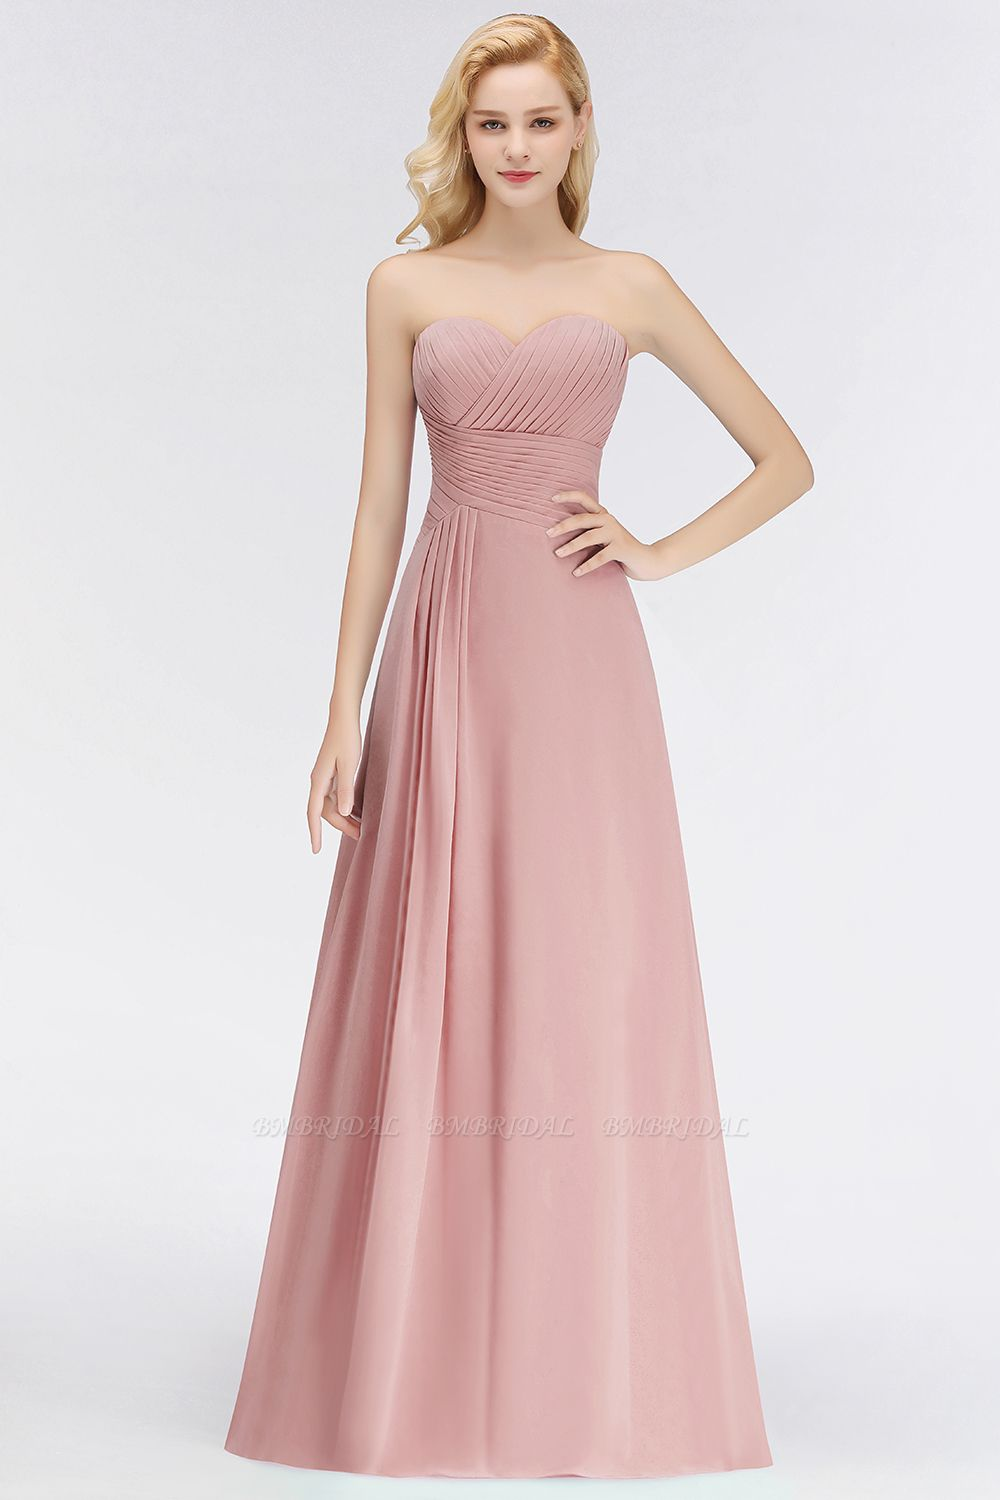 Affordable Bridesmaid Dresses From BMbridal Get A Good Reputation